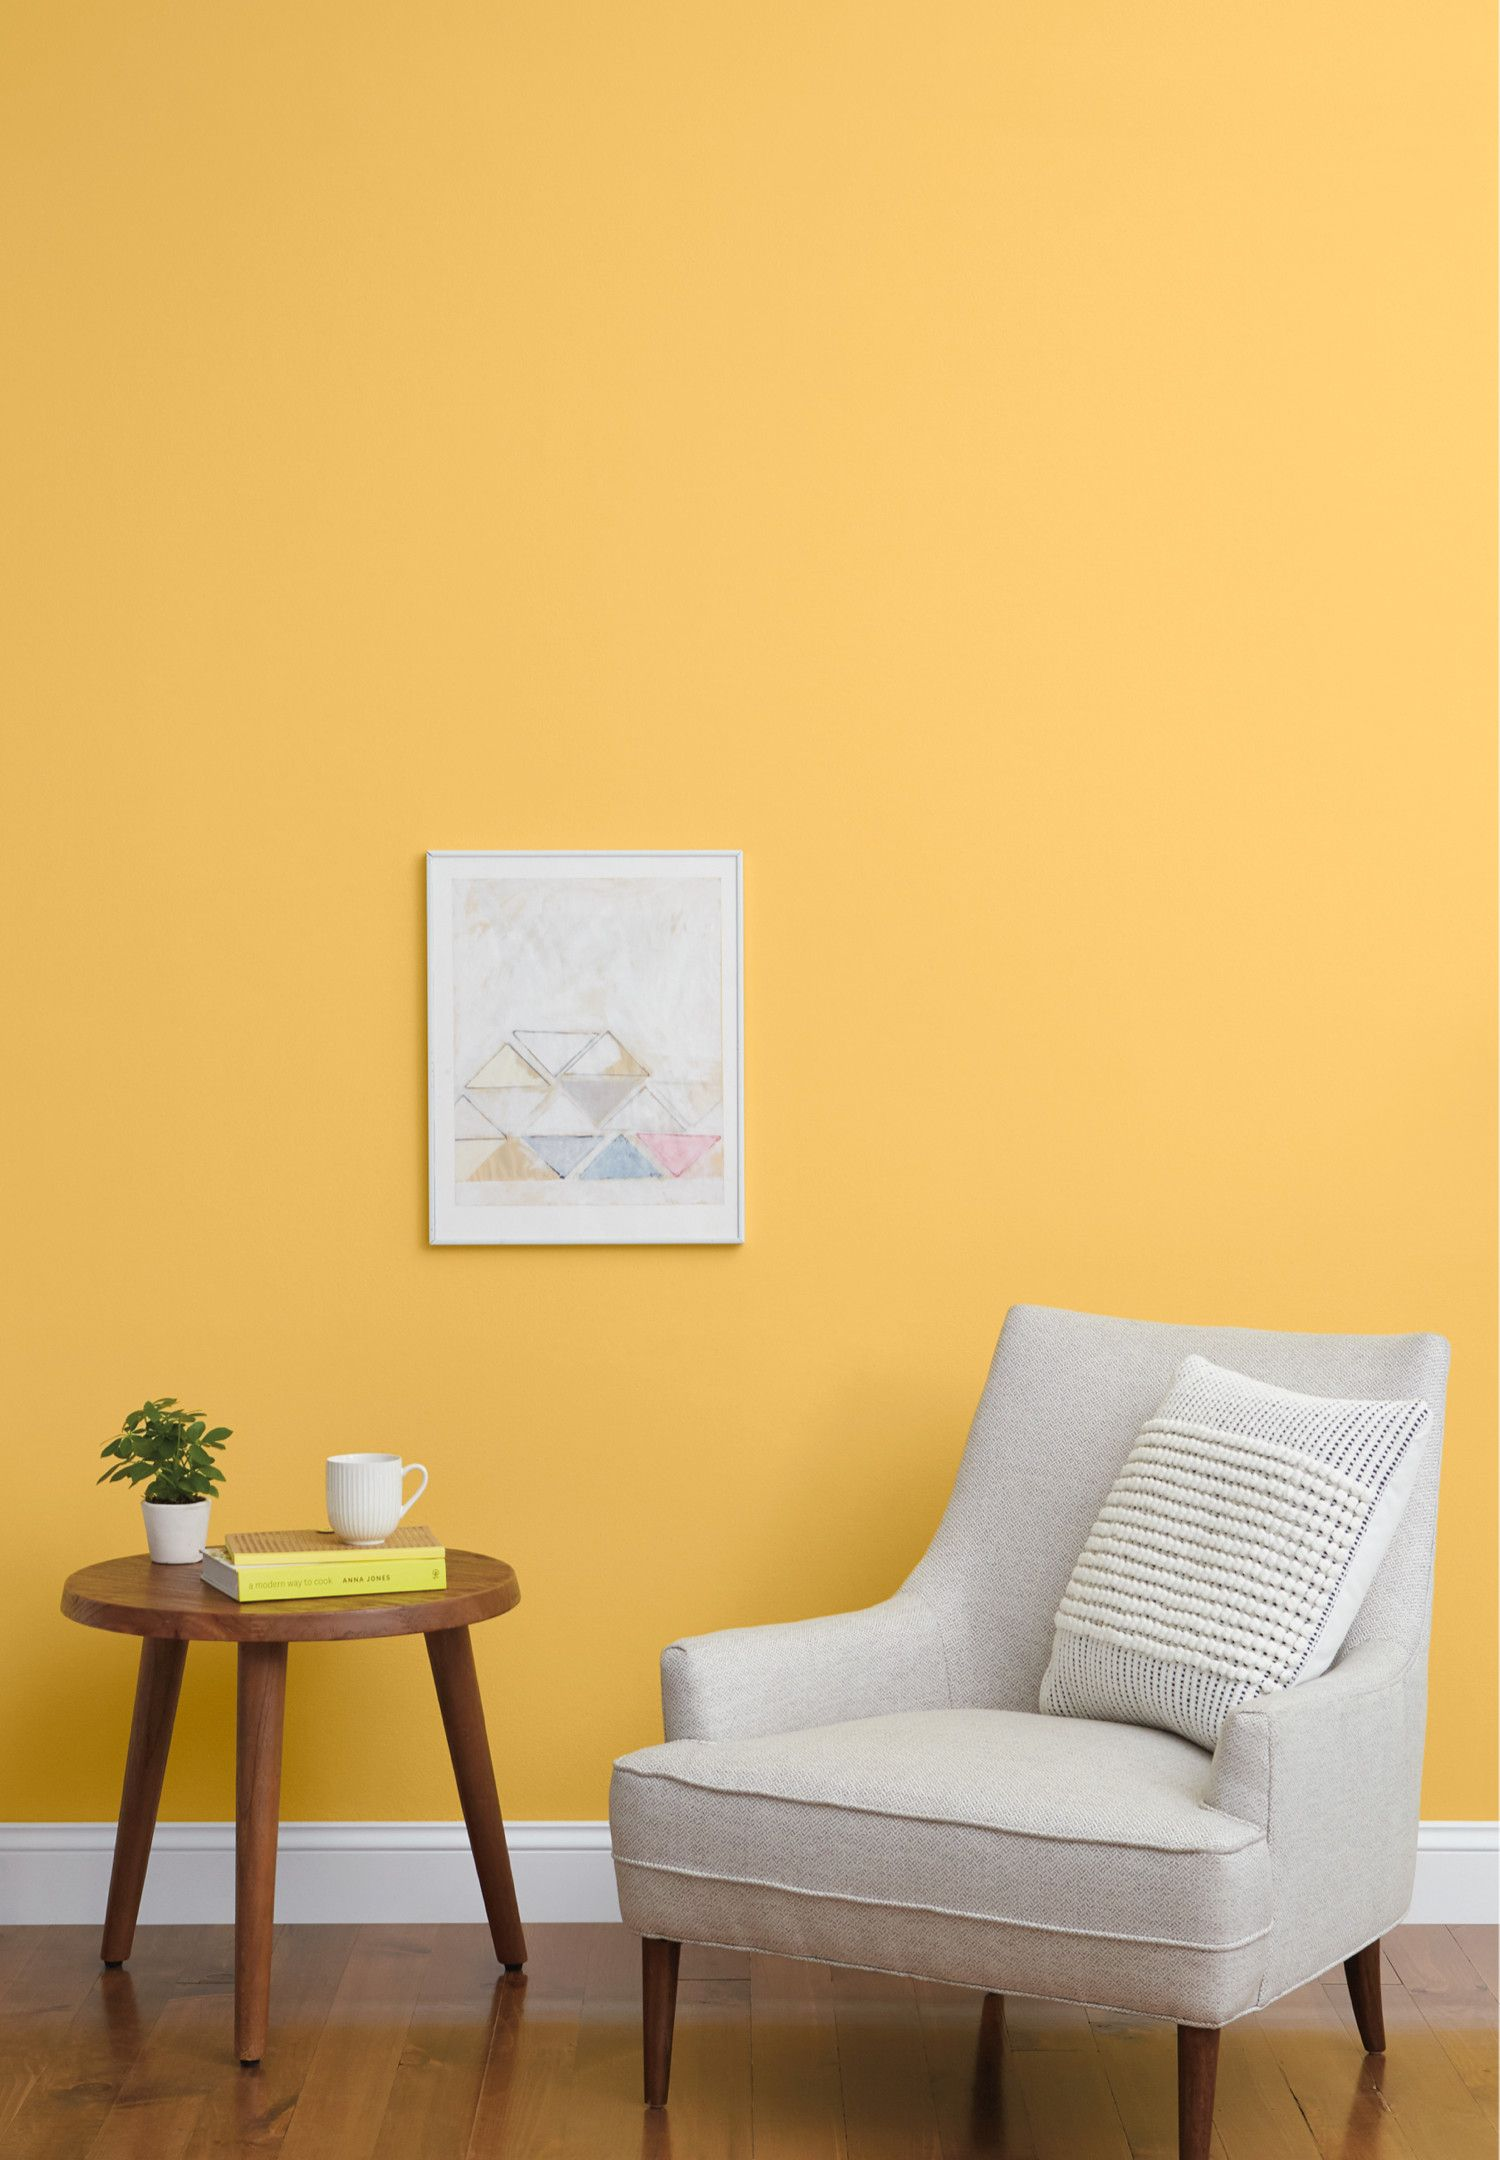 Best Yellow Paint Colors For Living Room Sofa Set Designs 2018 Golden Hour A Deep With Warm Sunny Glow Color By Clare Shop 55 Interior Designer Curated Easy Your Bedroom Kitchen